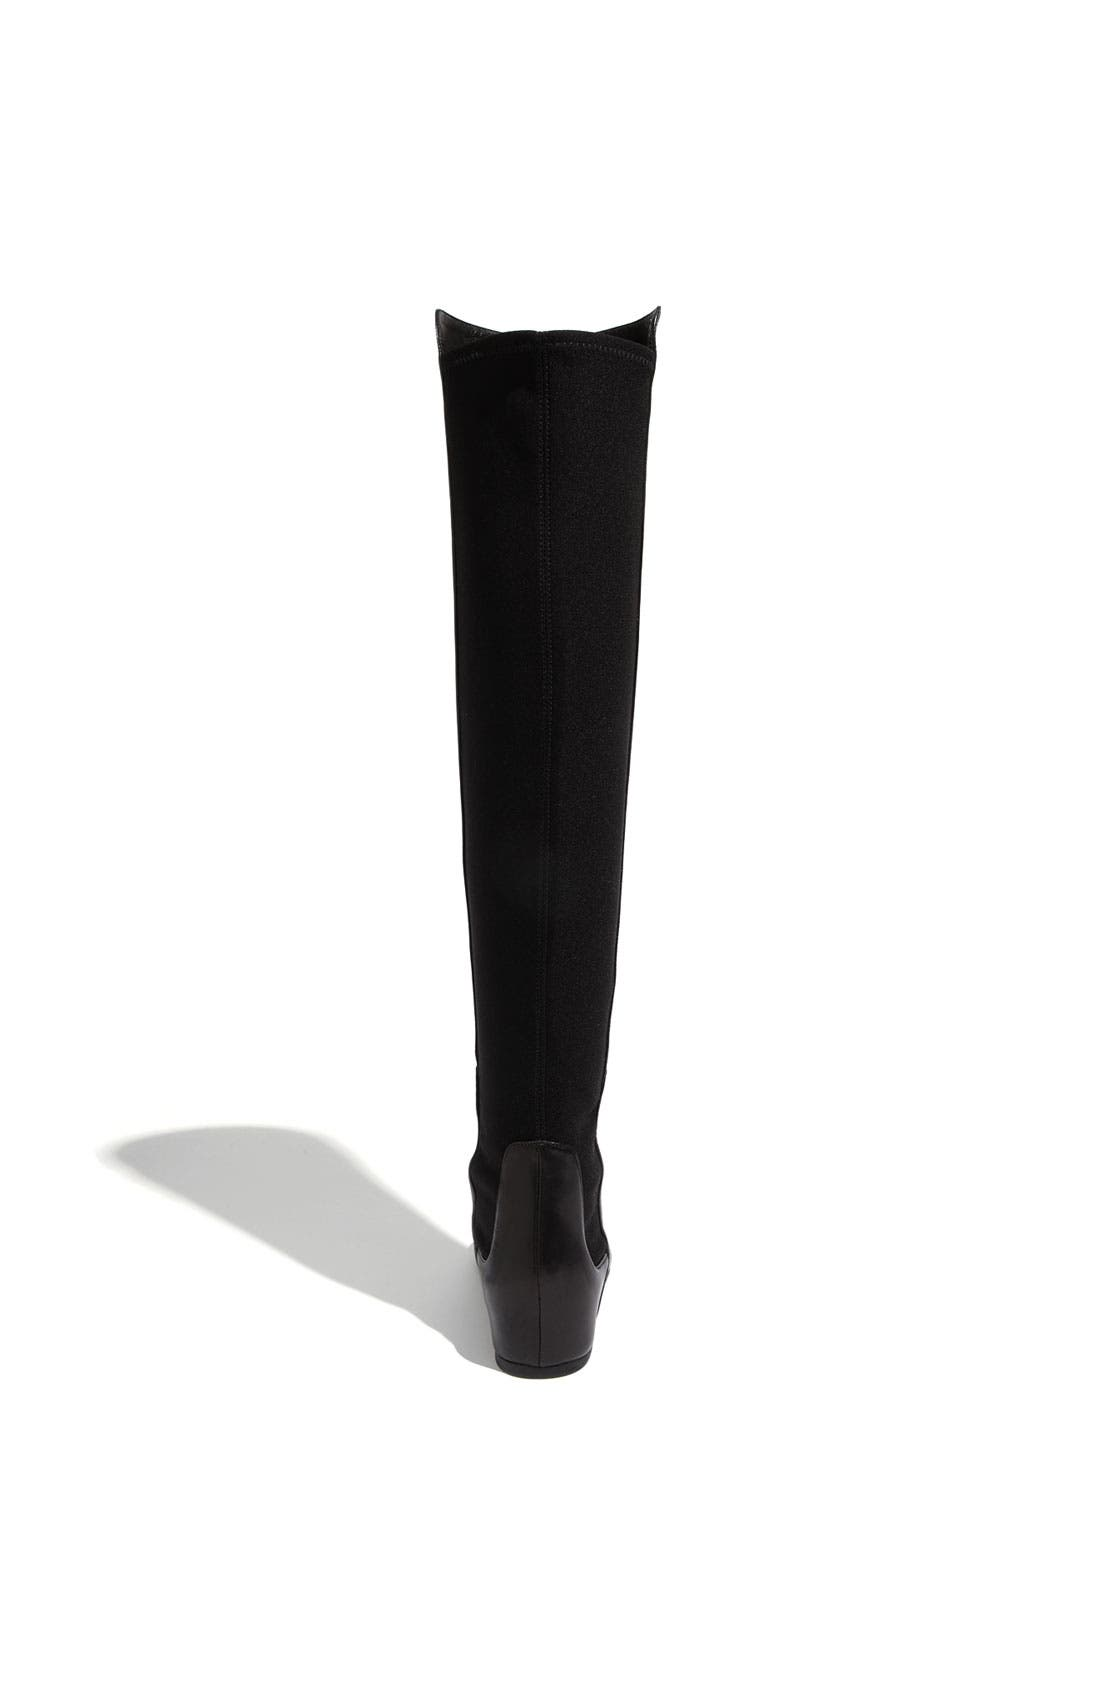 STUART WEITZMAN, 'Mainline' Stretch Fabric & Nappa Leather Over the Knee Boot, Alternate thumbnail 3, color, 002